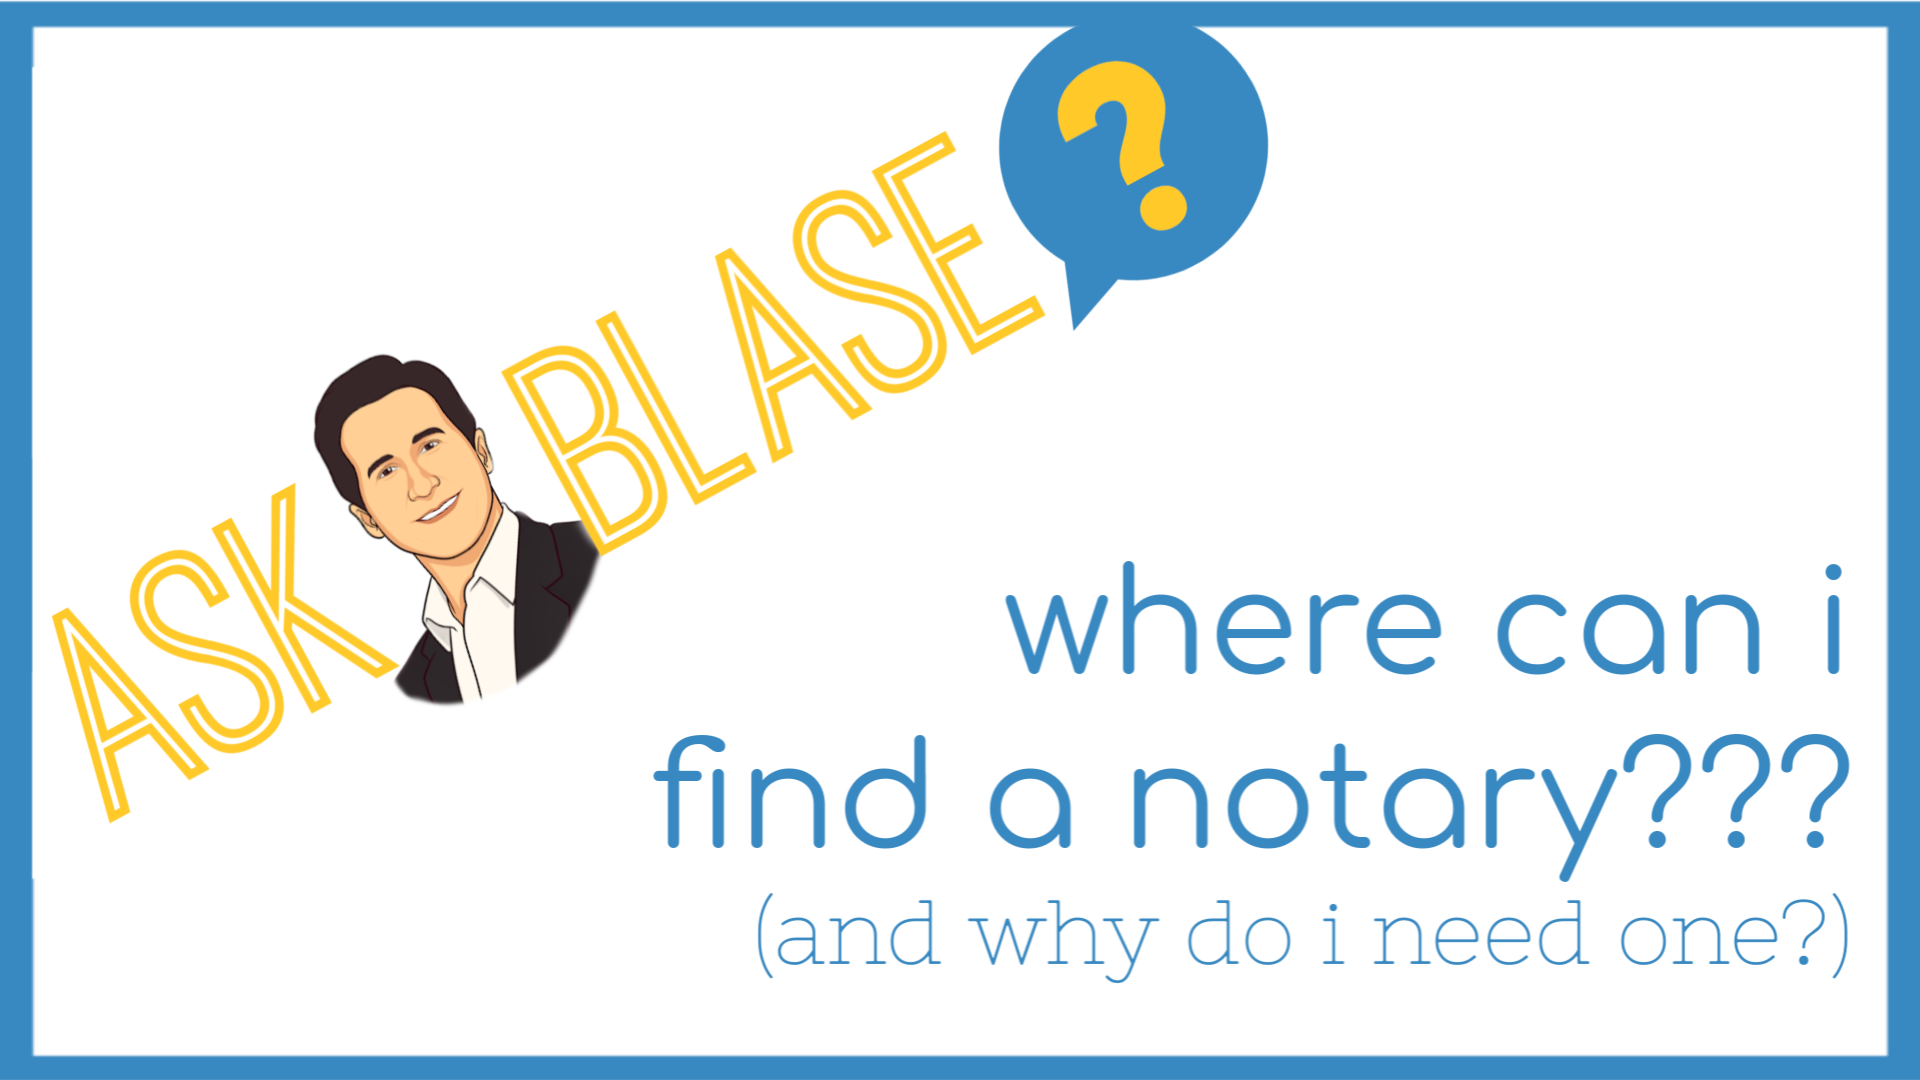 Where Can I Find a Notary